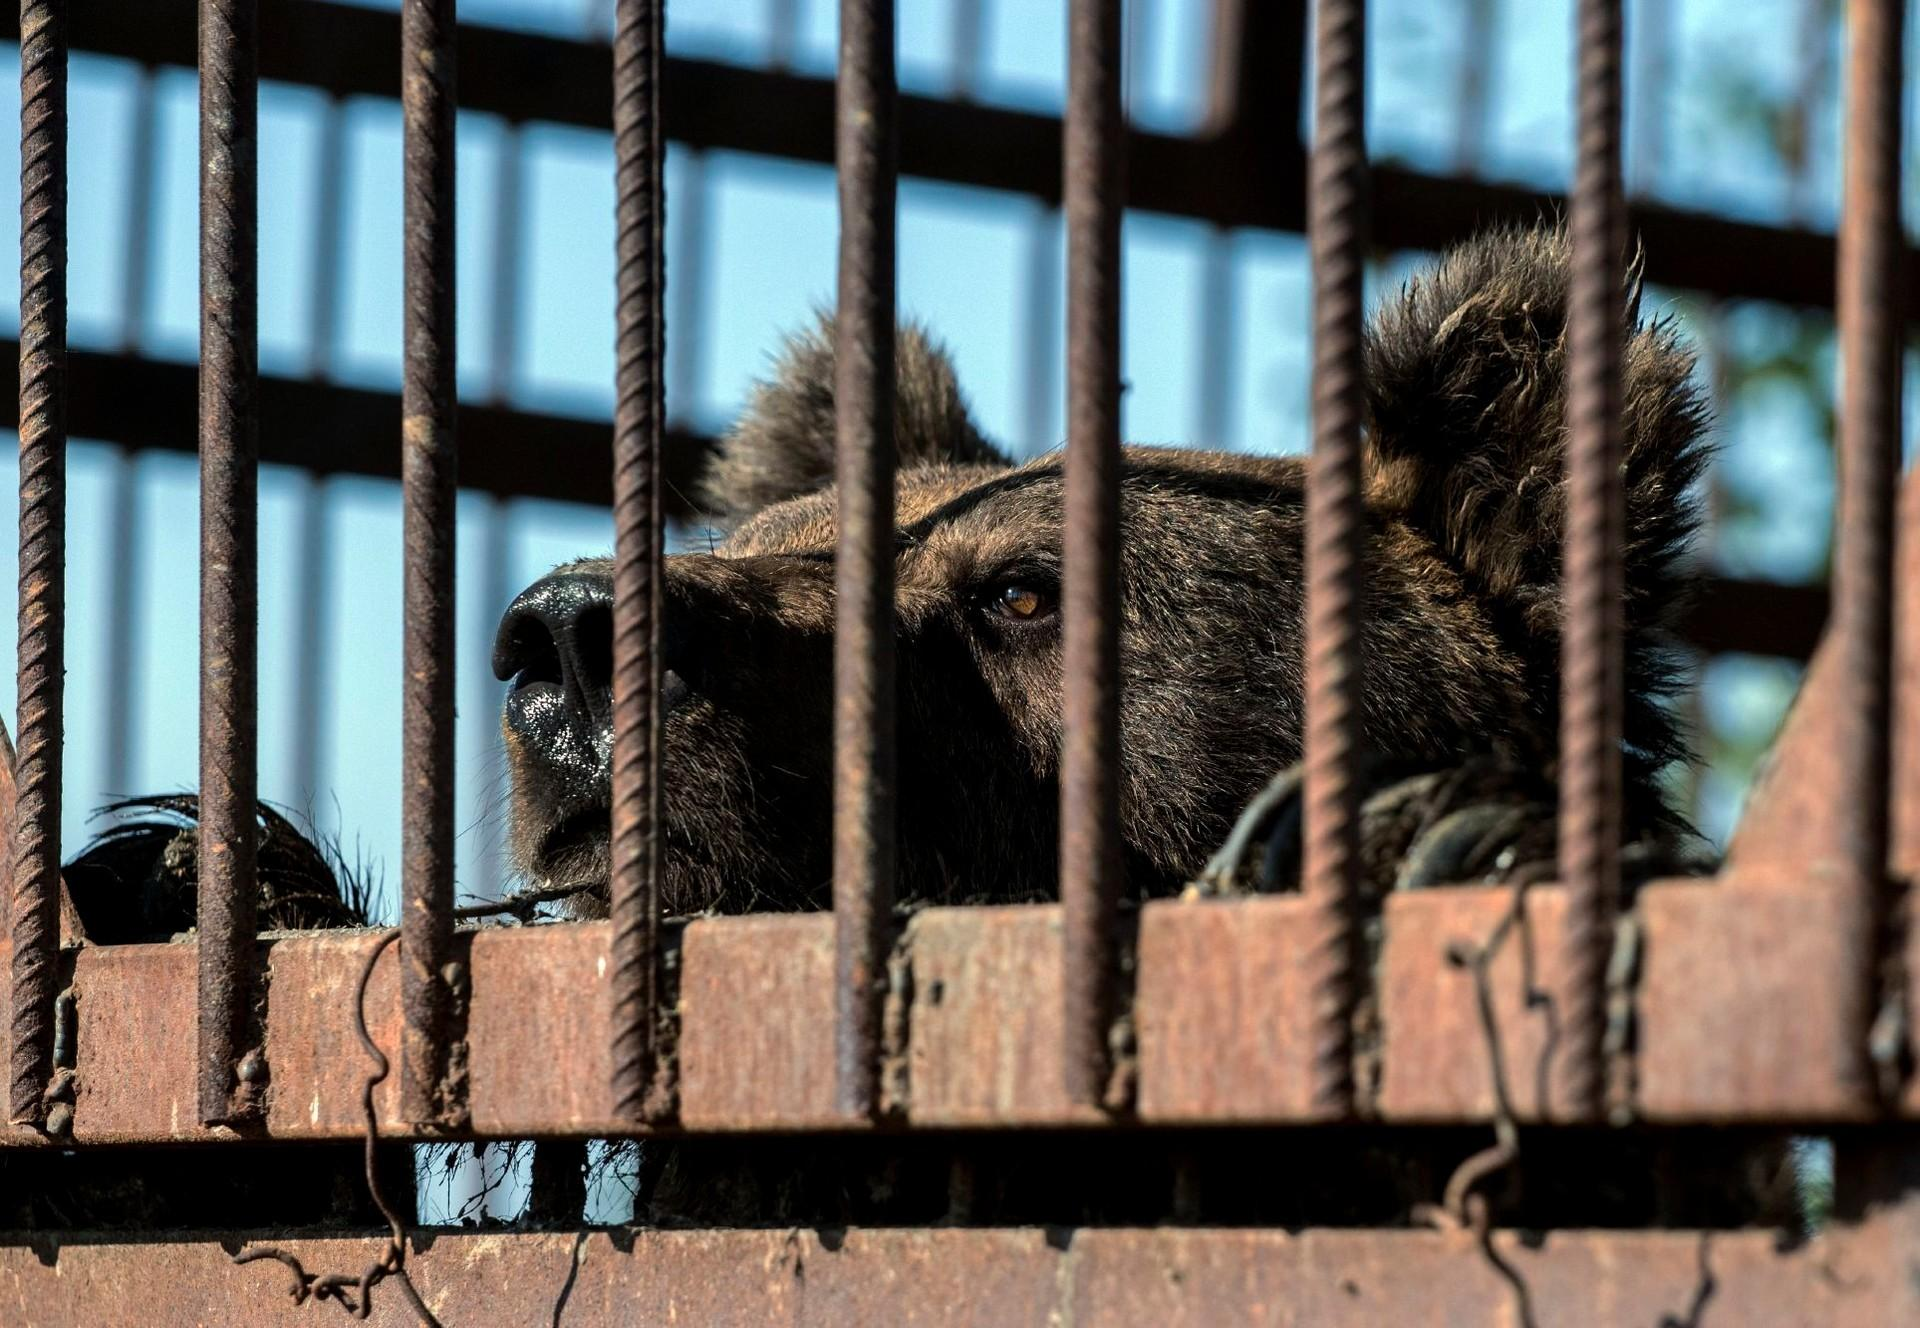 Bear in a cage in Serbia